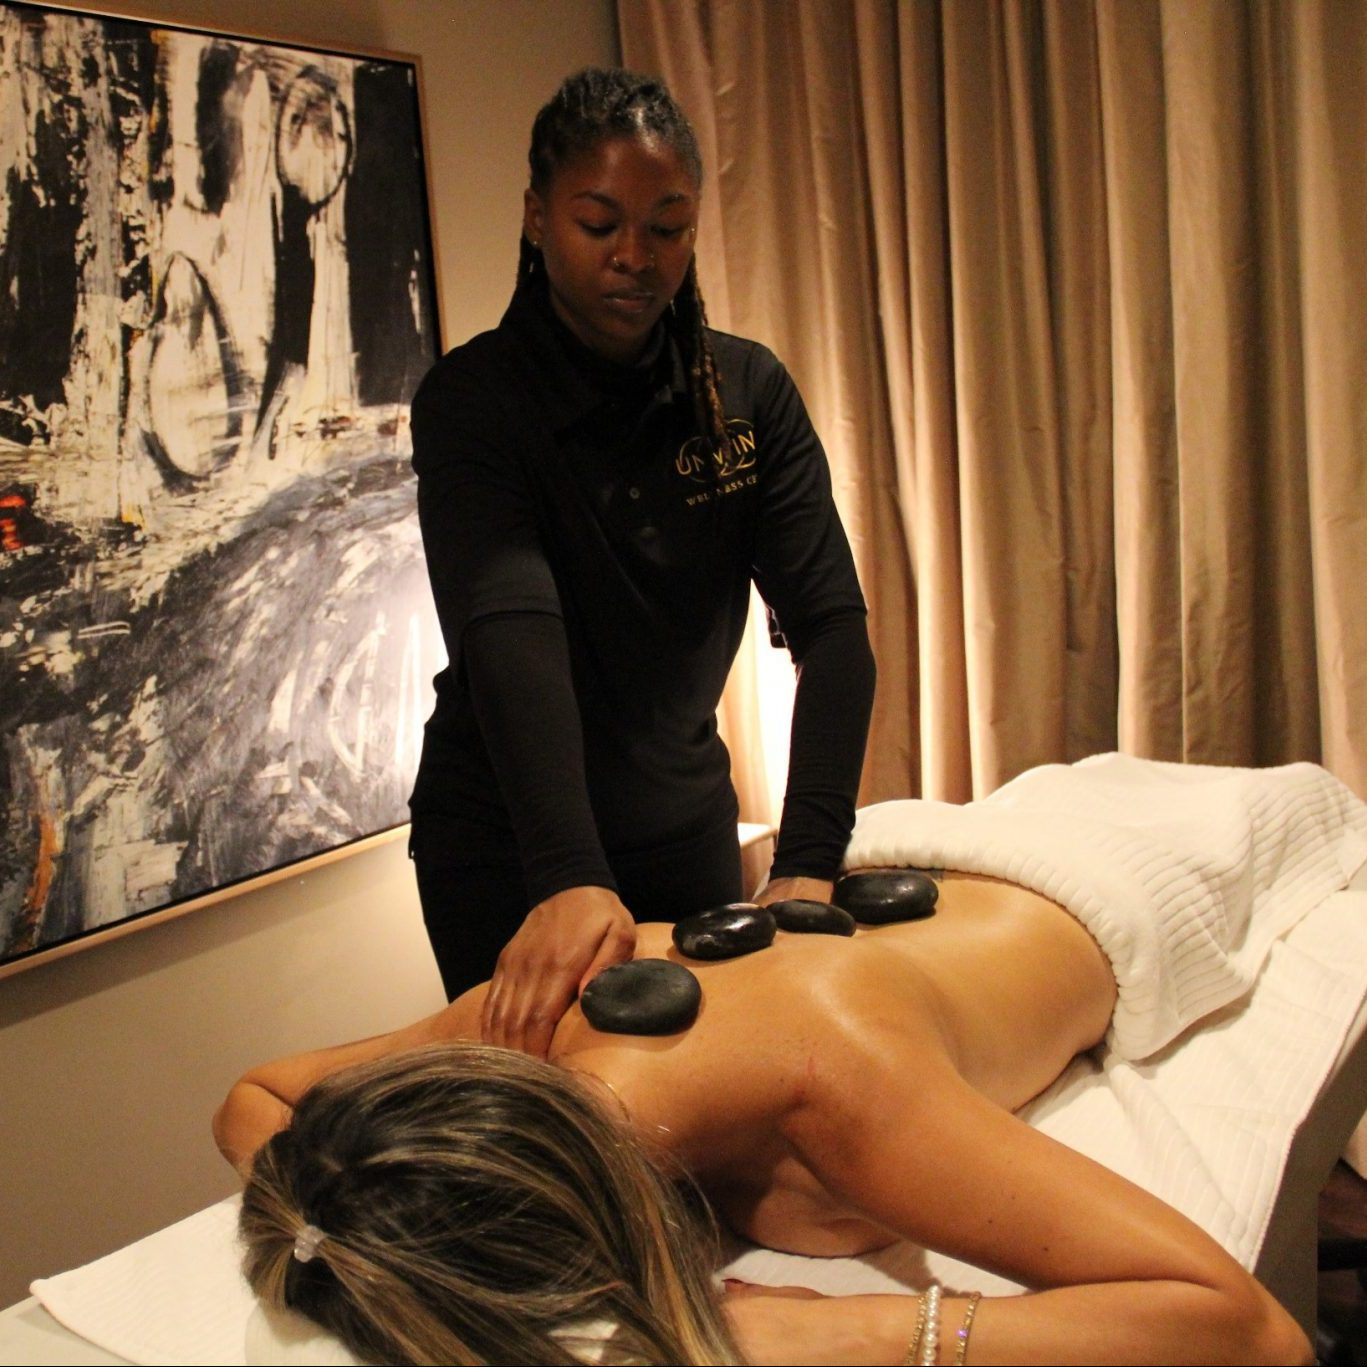 Massage therapist placing smooth, hot stones on a client's back to relieve tension.